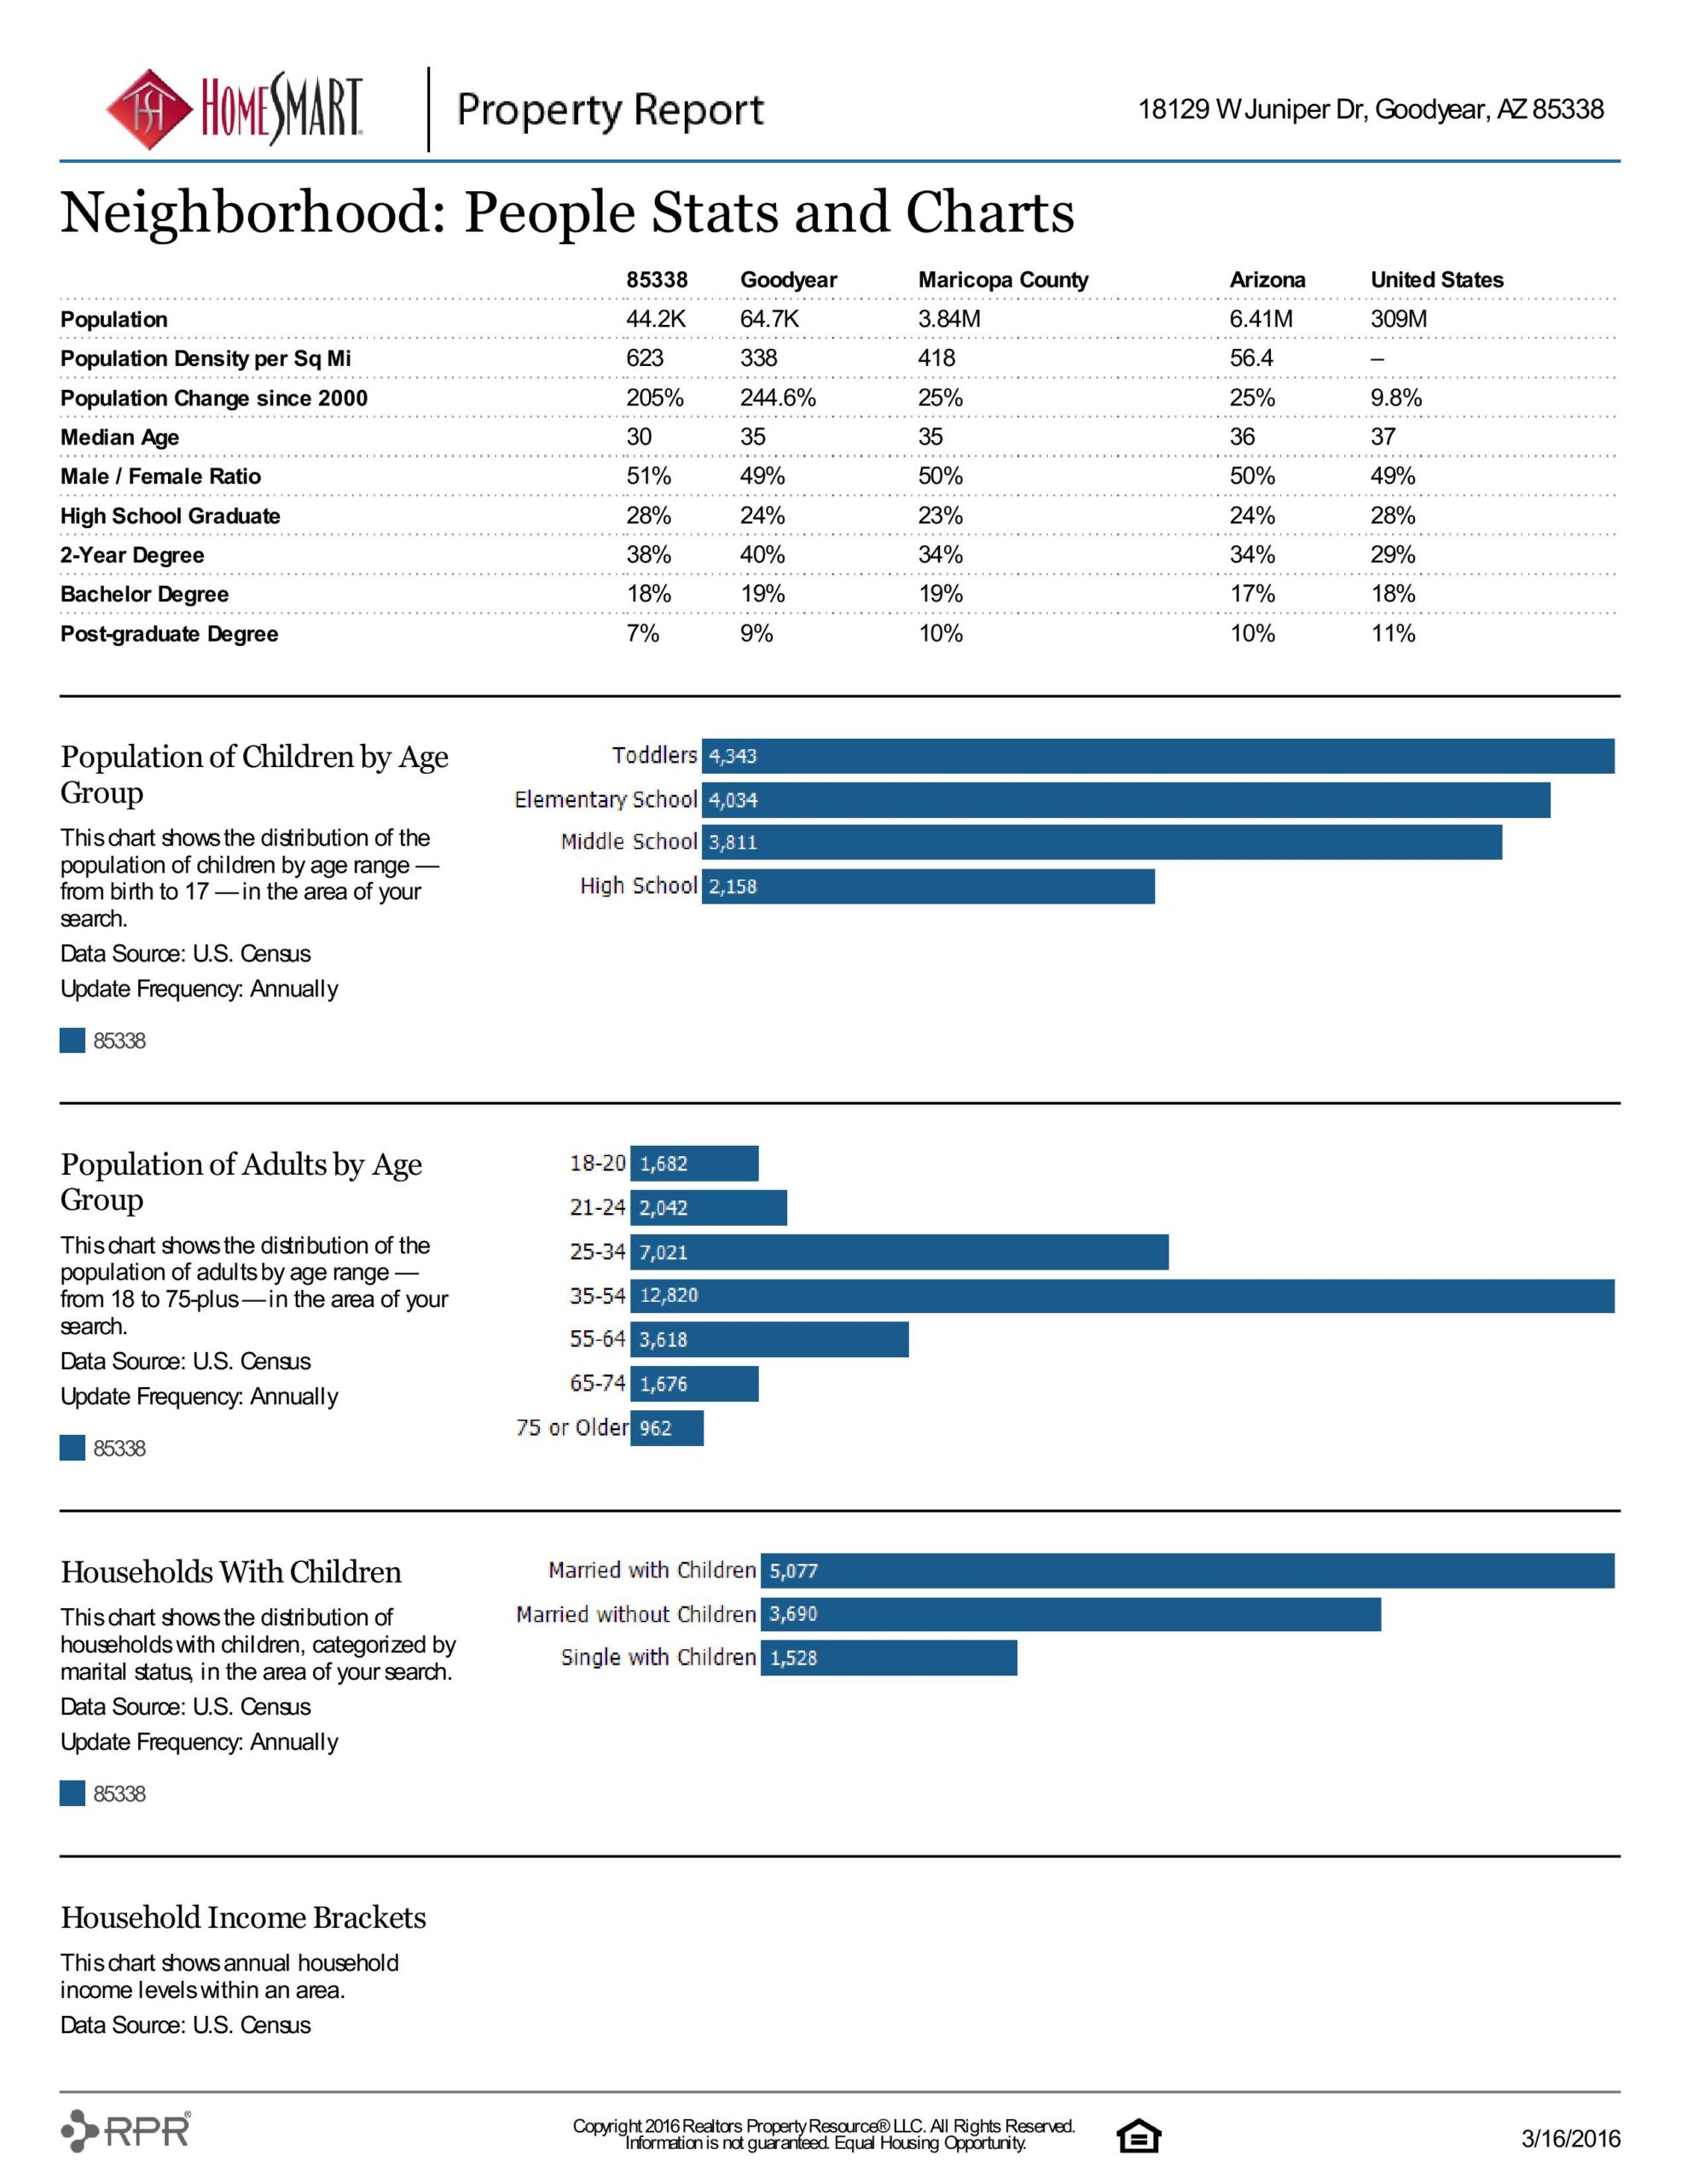 18129 W JUNIPER DR PROPERTY REPORT-page-022